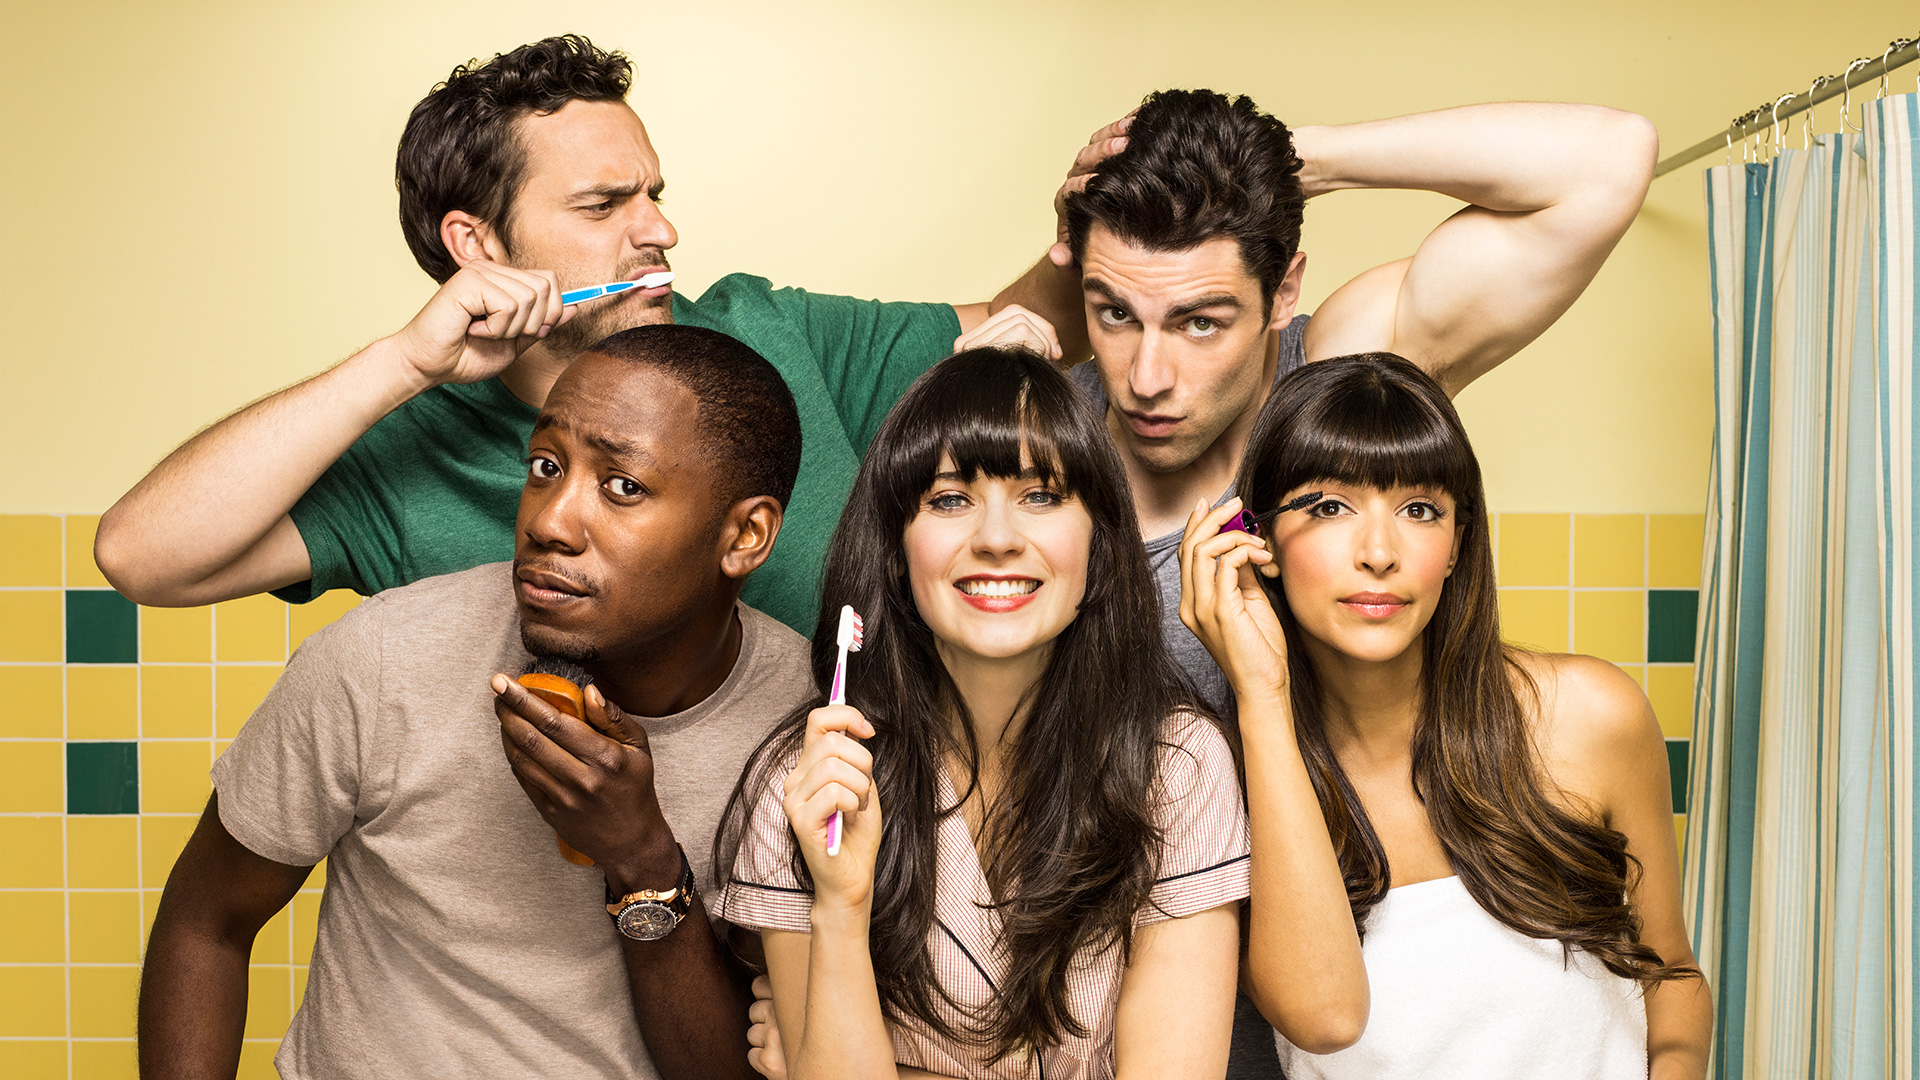 New Girl wallpaper 1